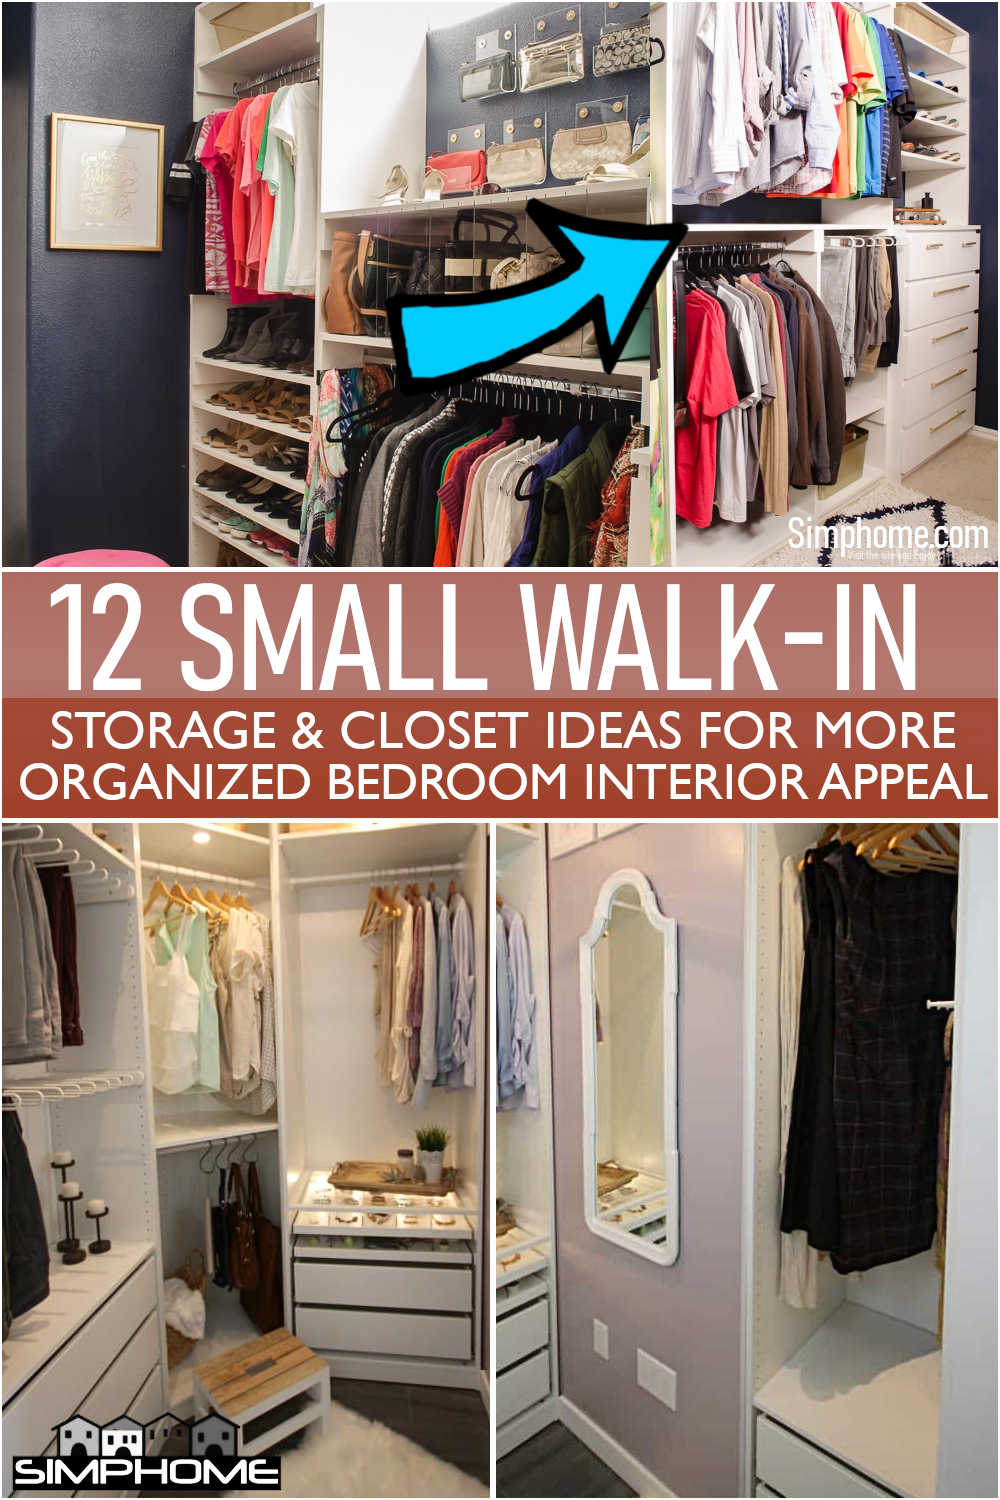 12 Small Walk-in Closet Storage Ideas for Bedrooms From Simphome